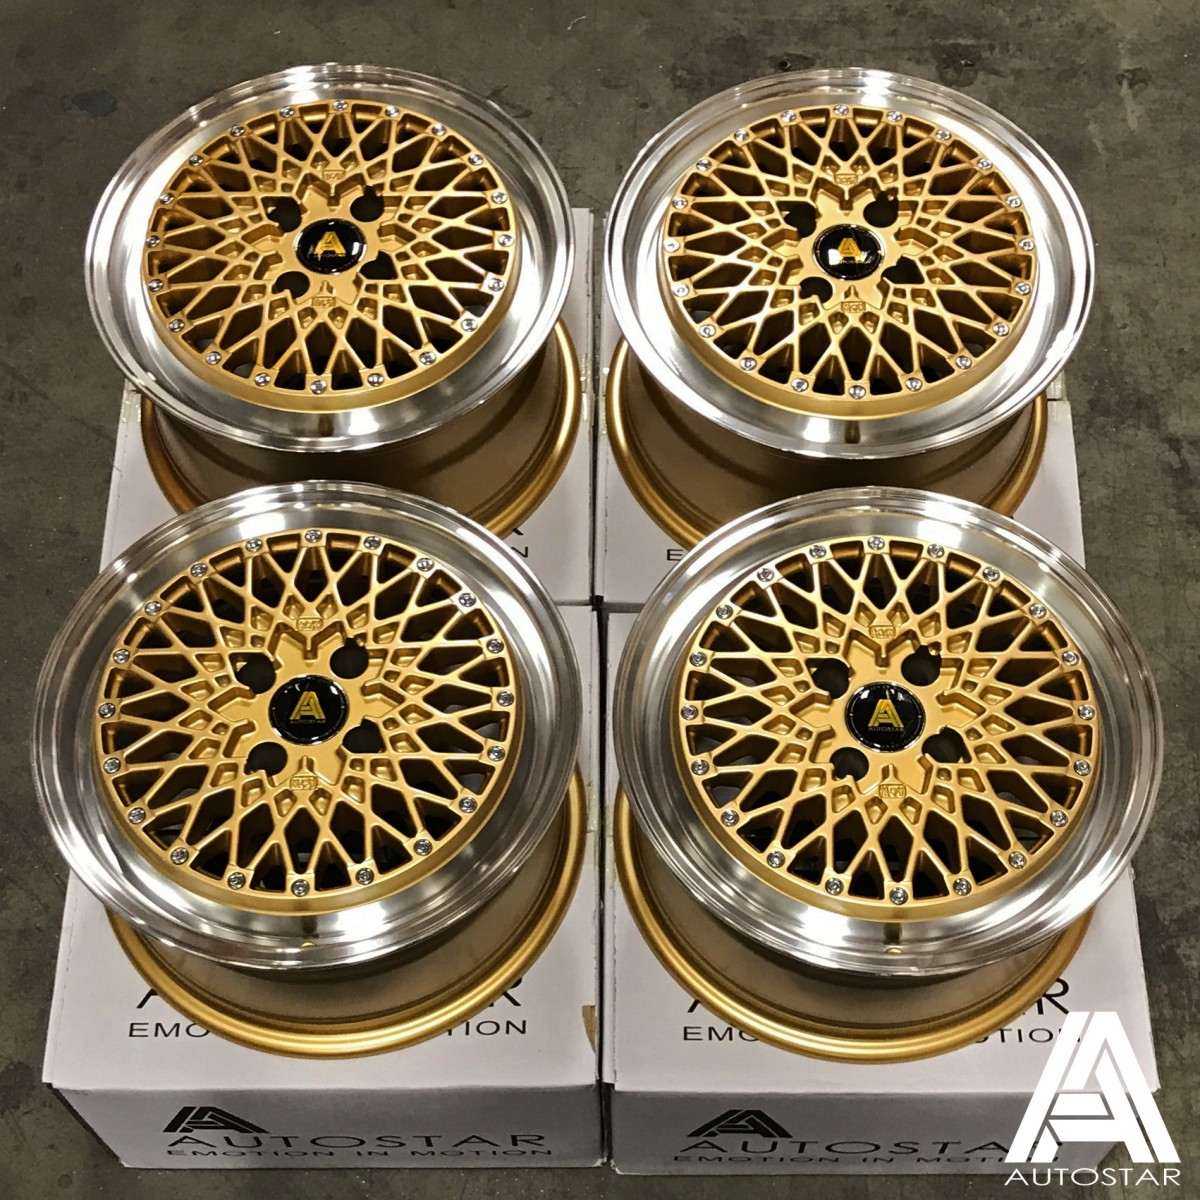 AutoStar Minus 15x7.5 4x100 ET25 Polished with Gold Centre - Set of 4